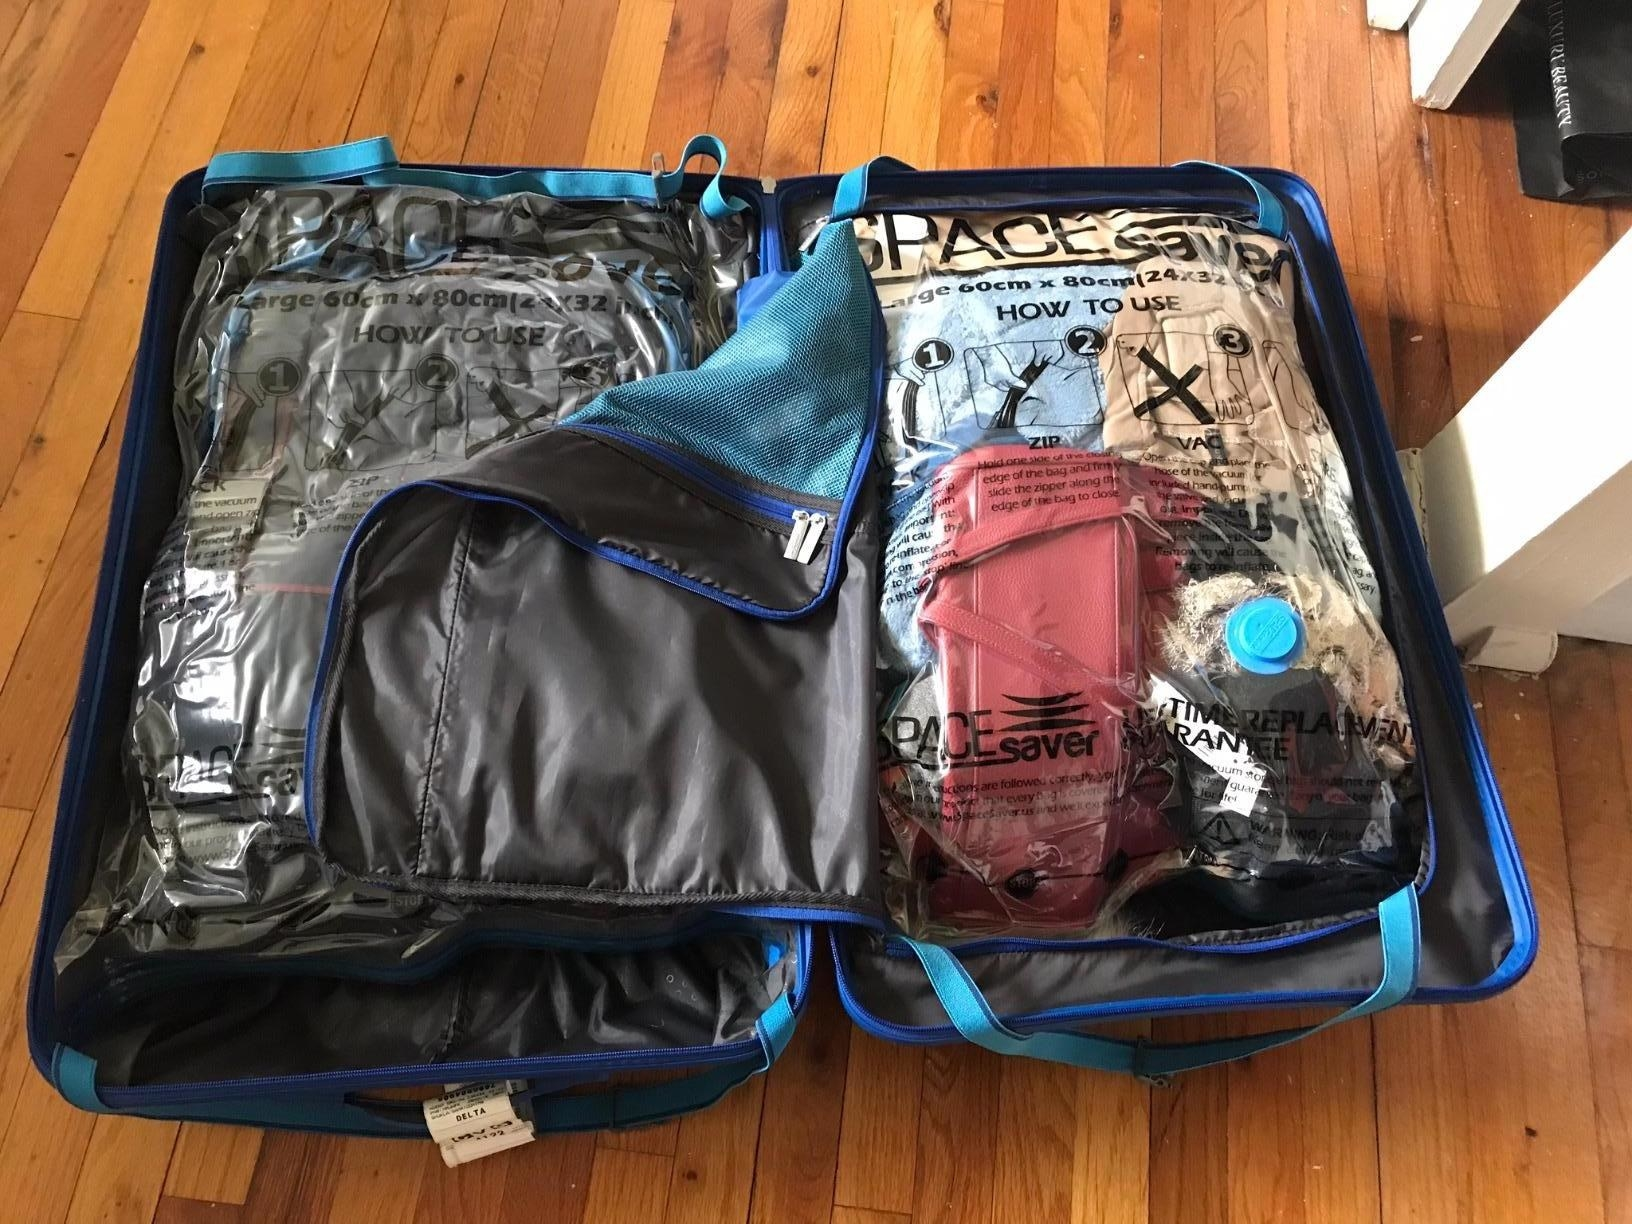 A reviewer's suitcase with clothes packed in two vacuum bags